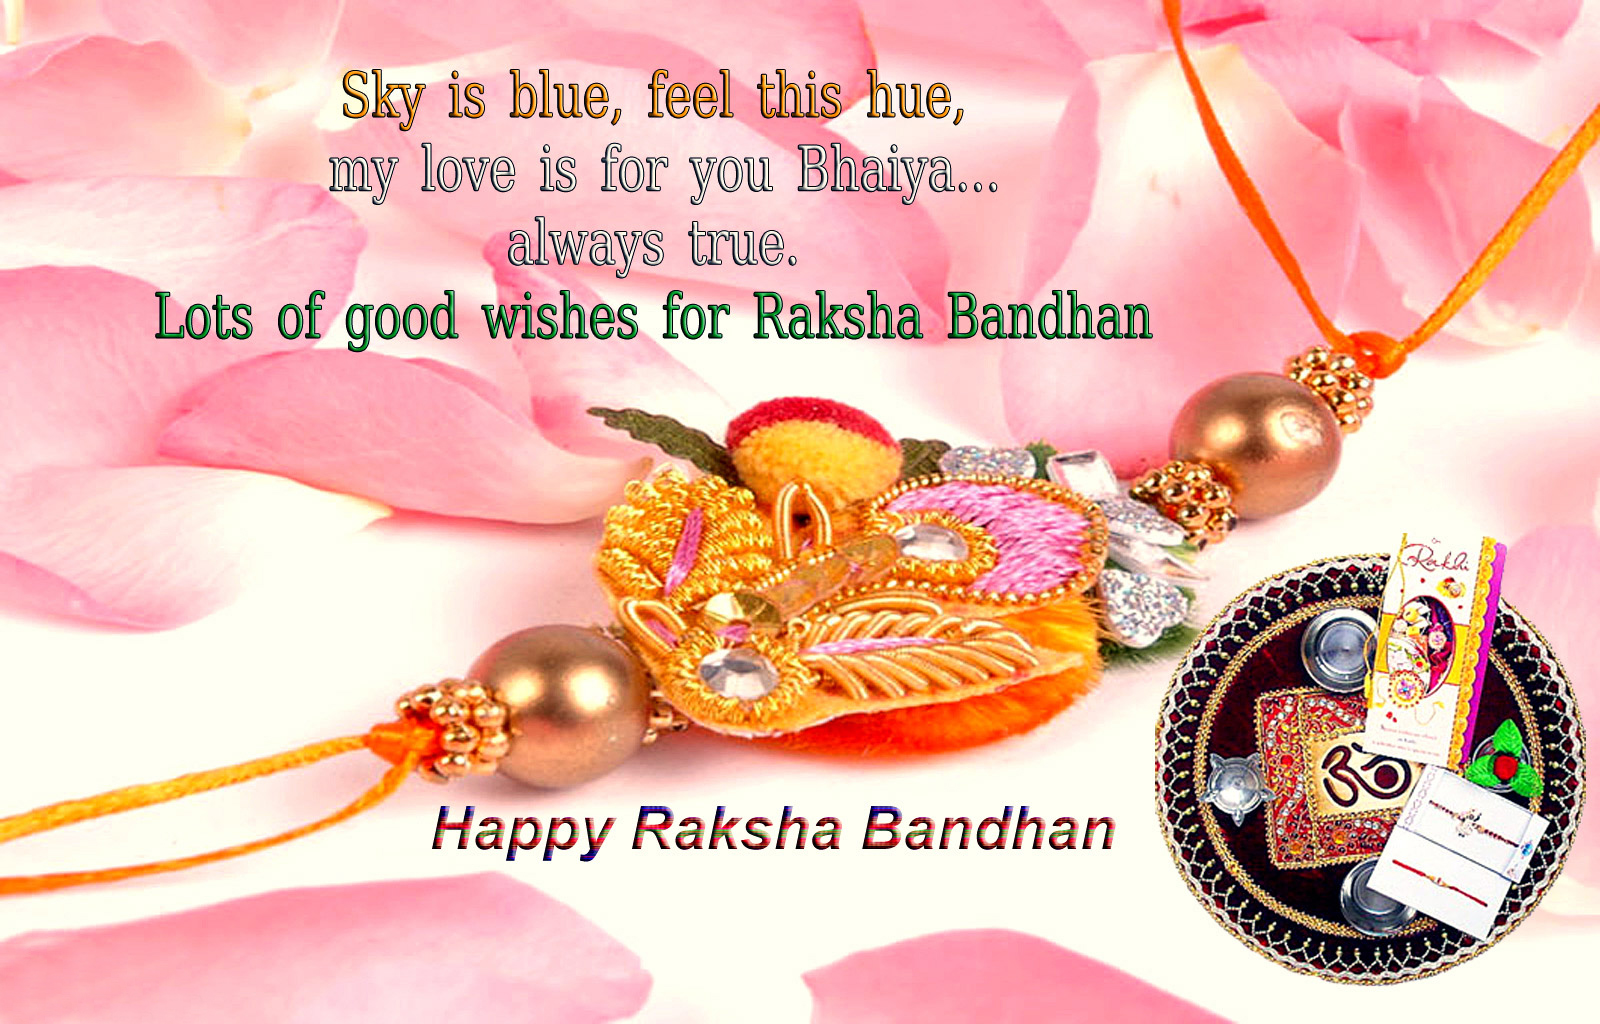 Happy Raksha Bandhan Greeting Cards